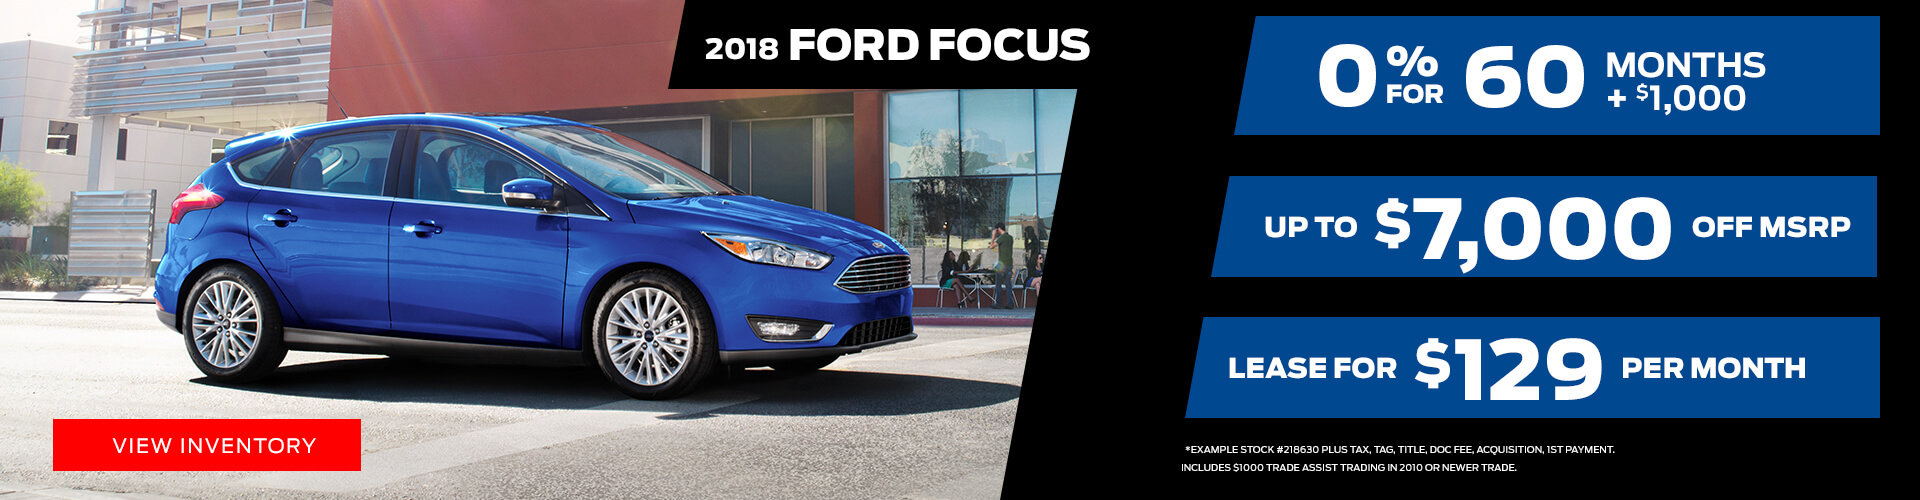 Special offer on 2018 Ford Focus 2018 Ford Focus Special Offer